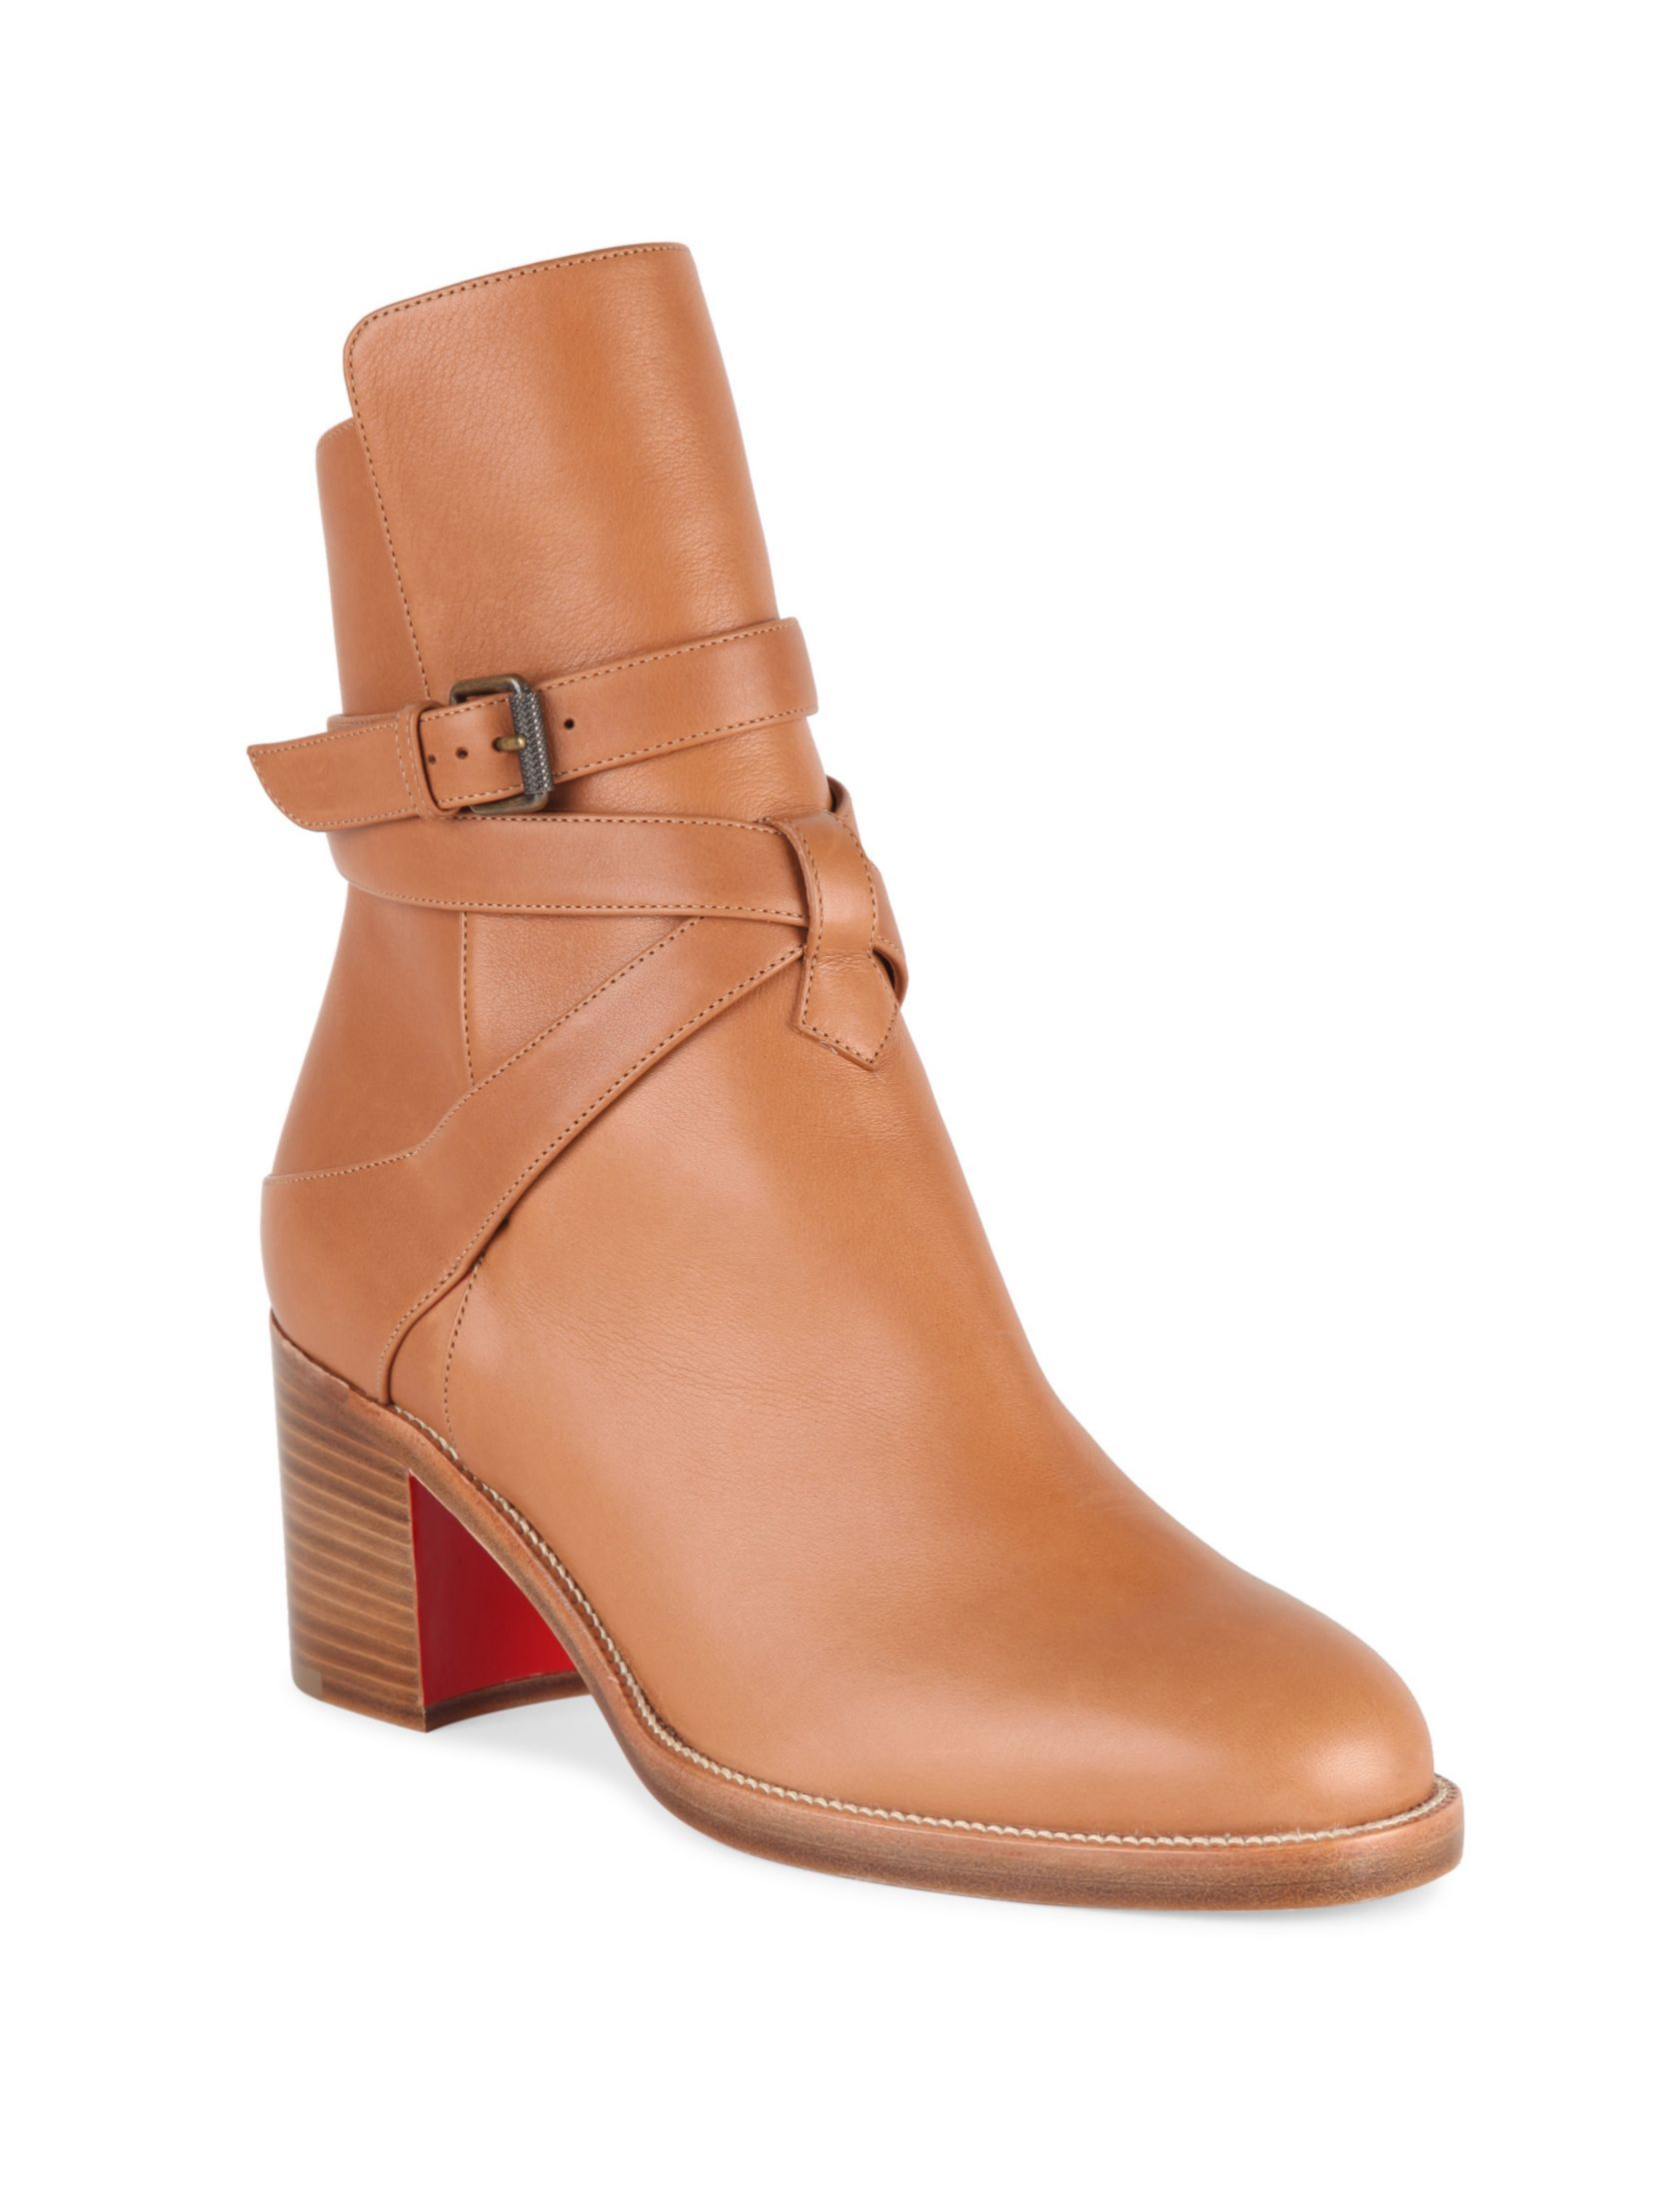 Leather · Christian Louboutin Karistrap 70 Leather Booties